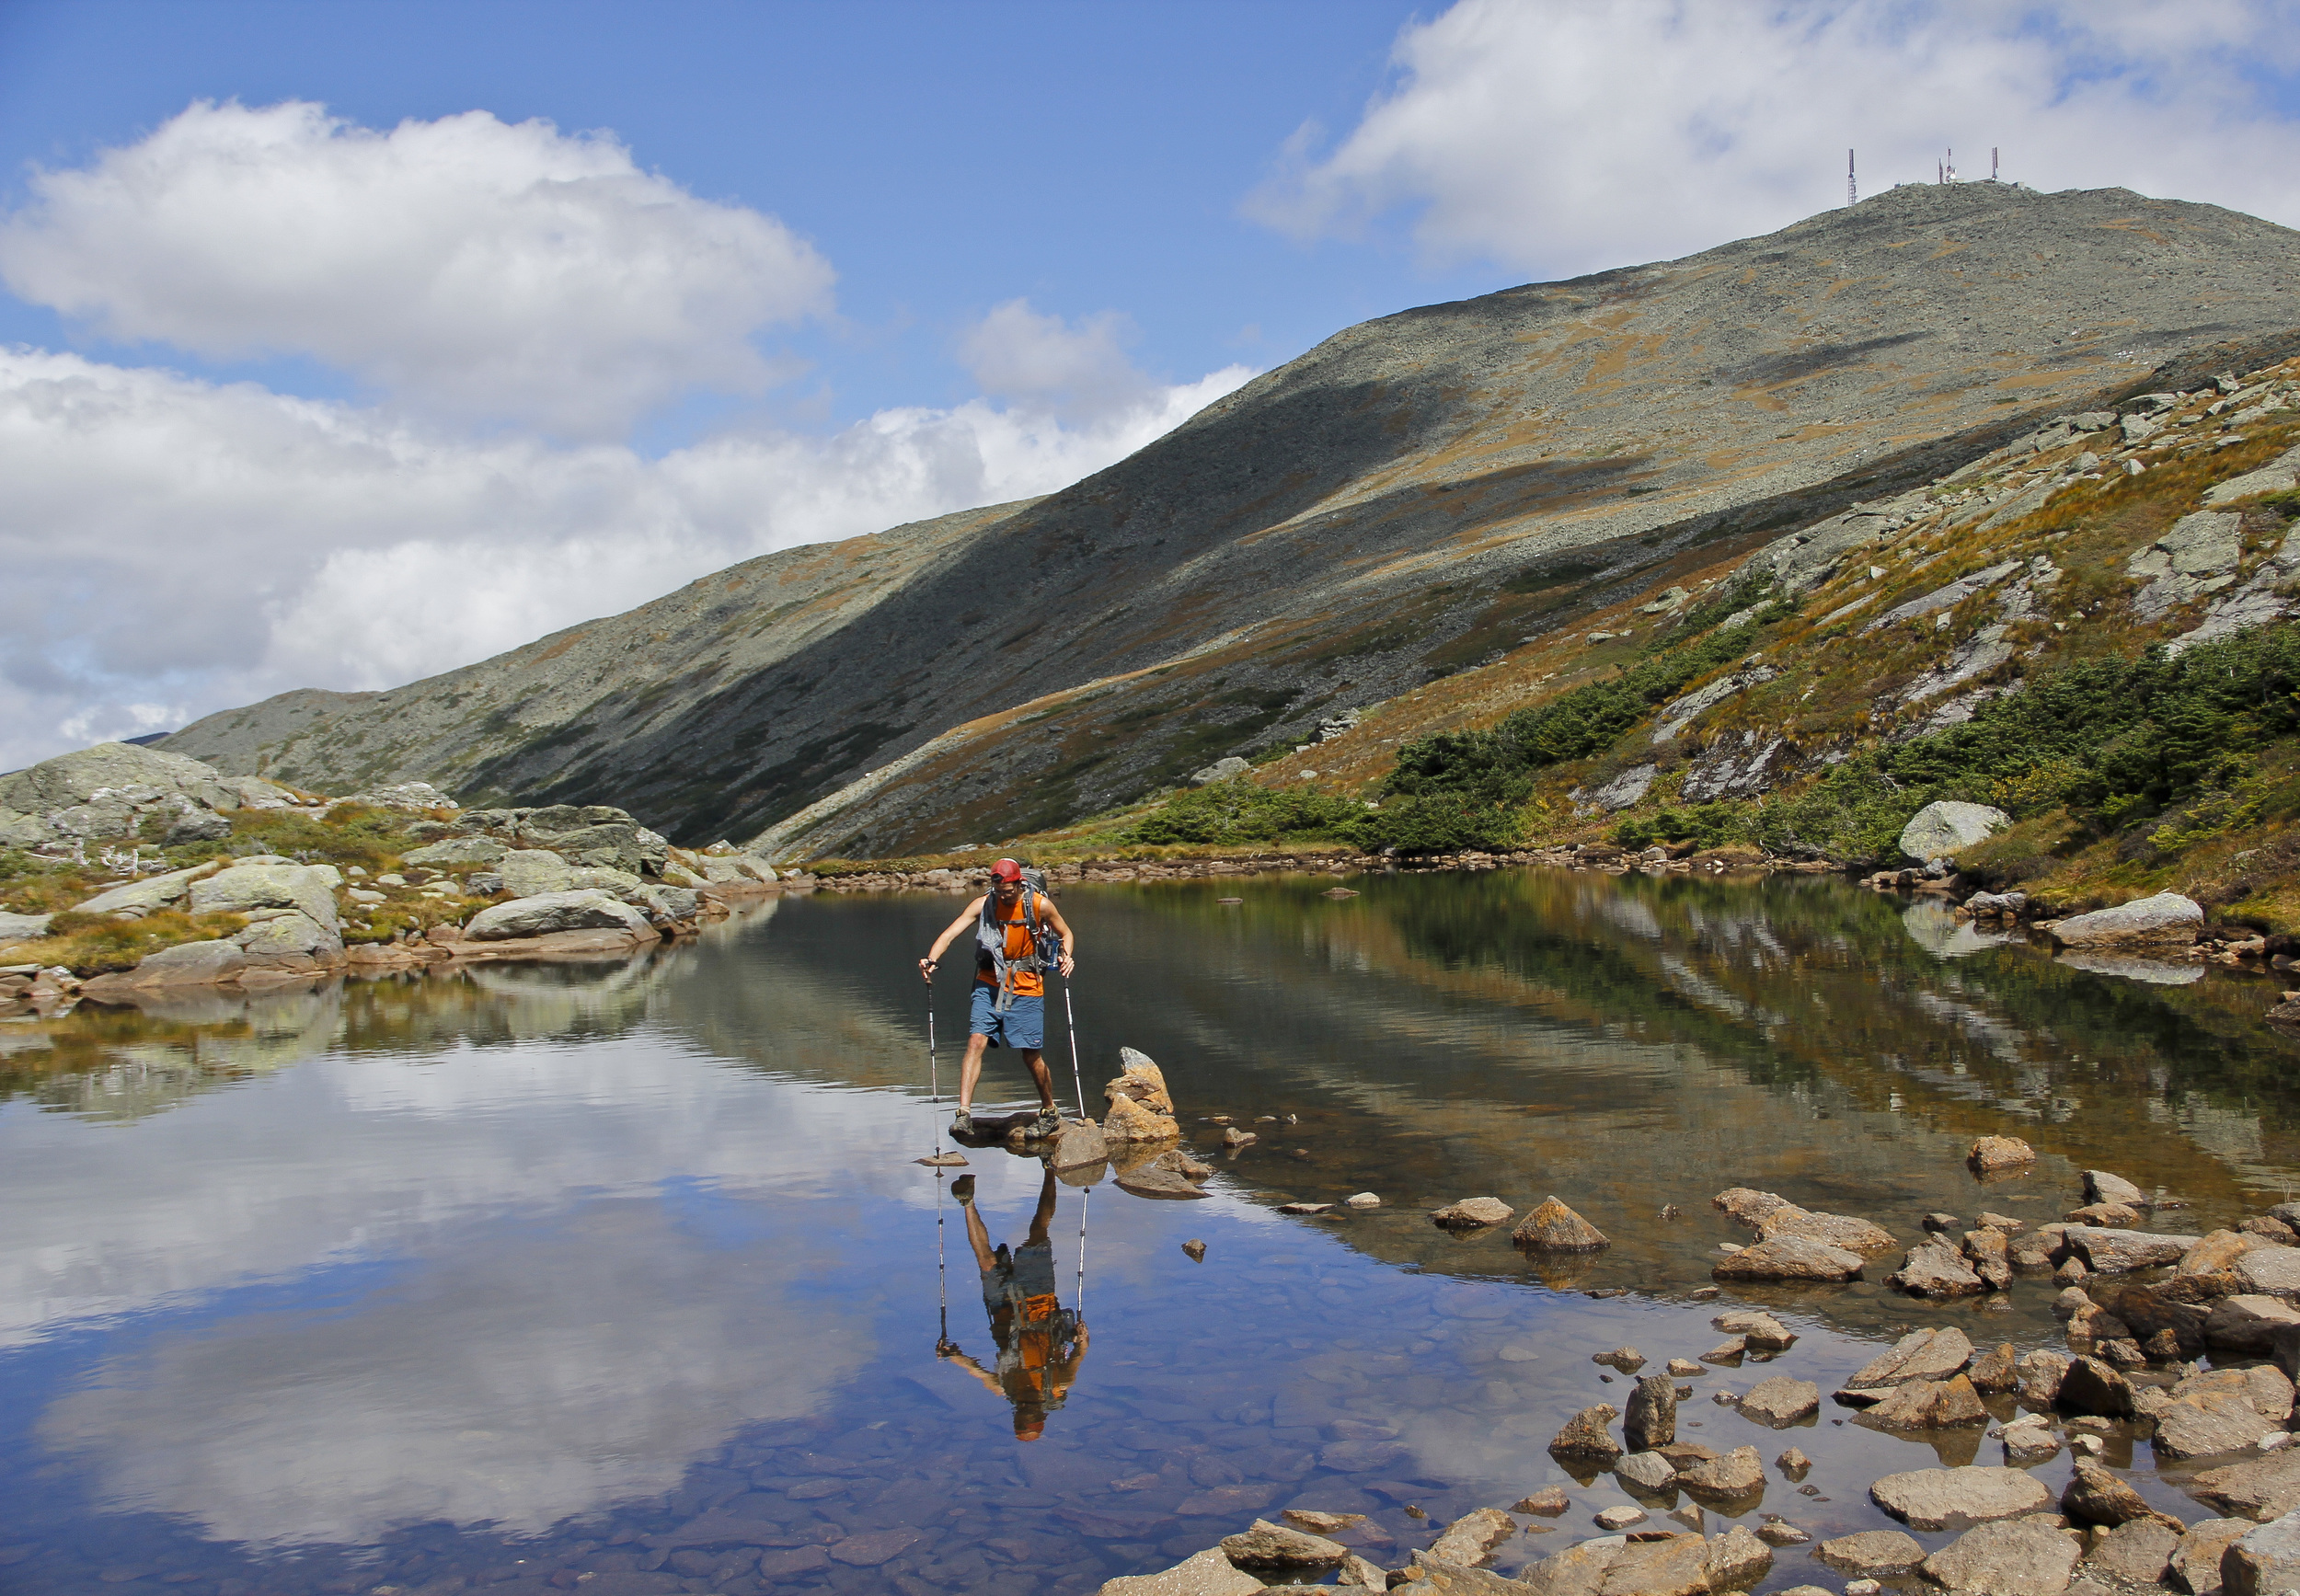 Rock hopping on the Lake of the Clouds, below Mt. Washington.